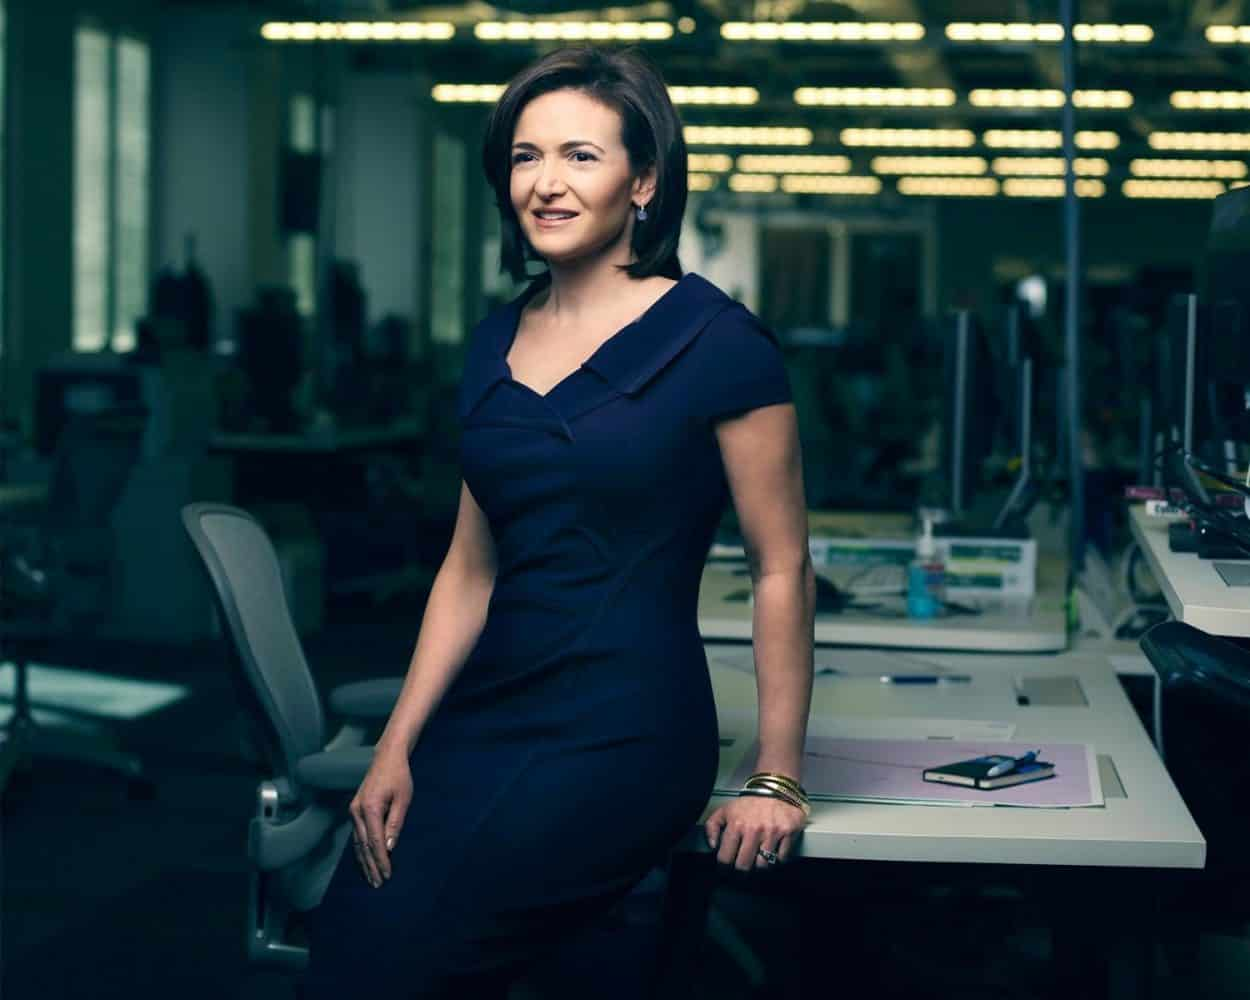 Best Advice From The World's Most Successful Women In Business (Including Sheryl Sandberg of Facebook)